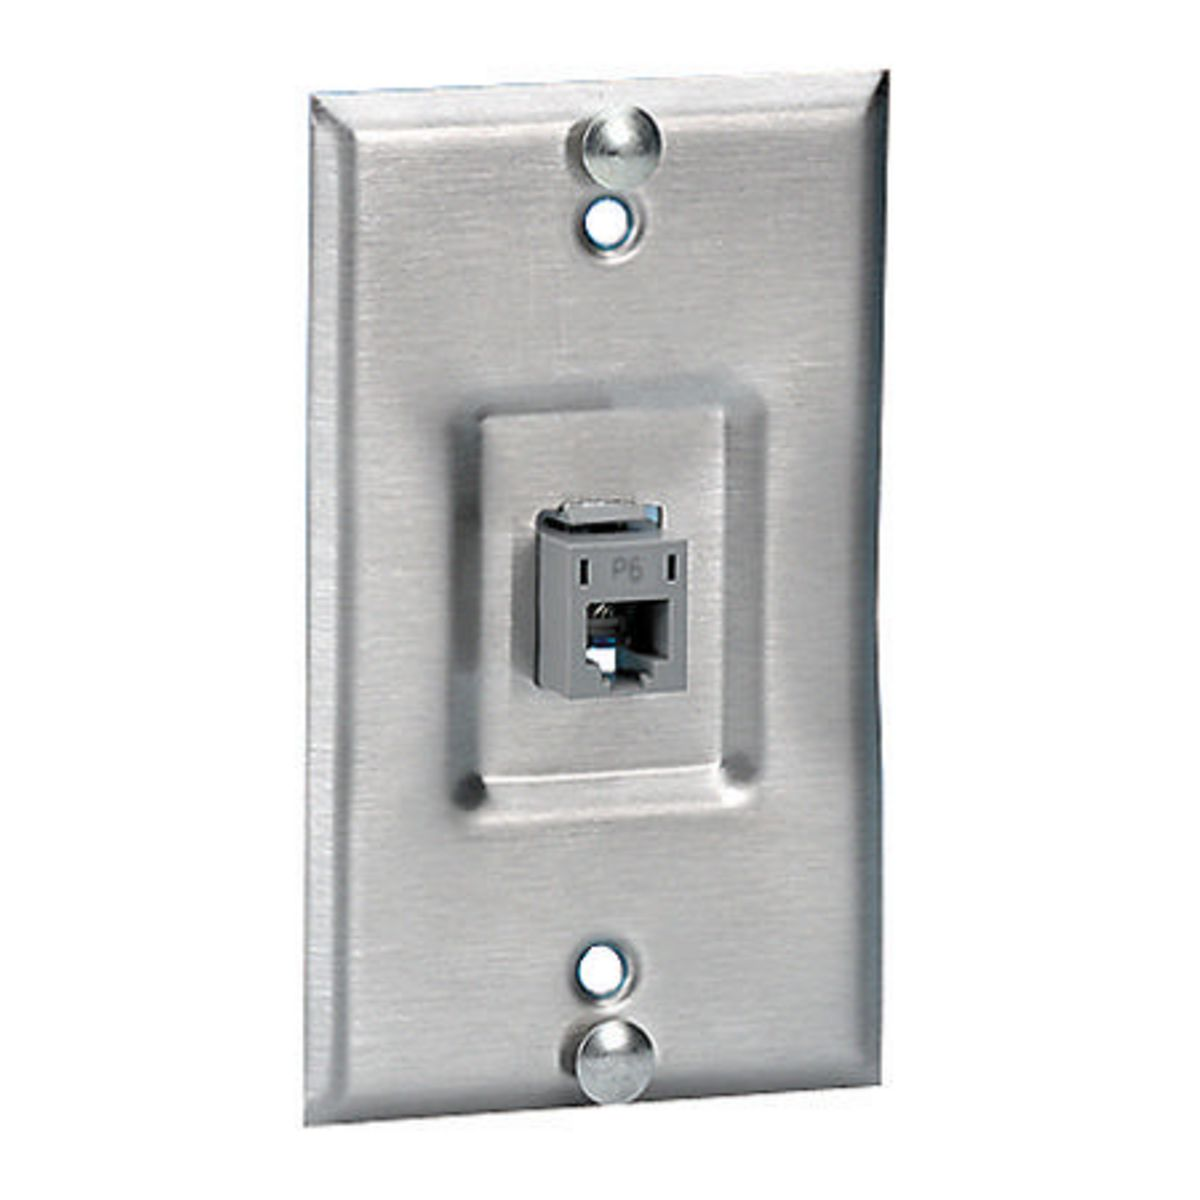 hpw SP6R HPW WALL PHONE PLATE RECESSED W/POSTS & GRAY CAT6 JACK